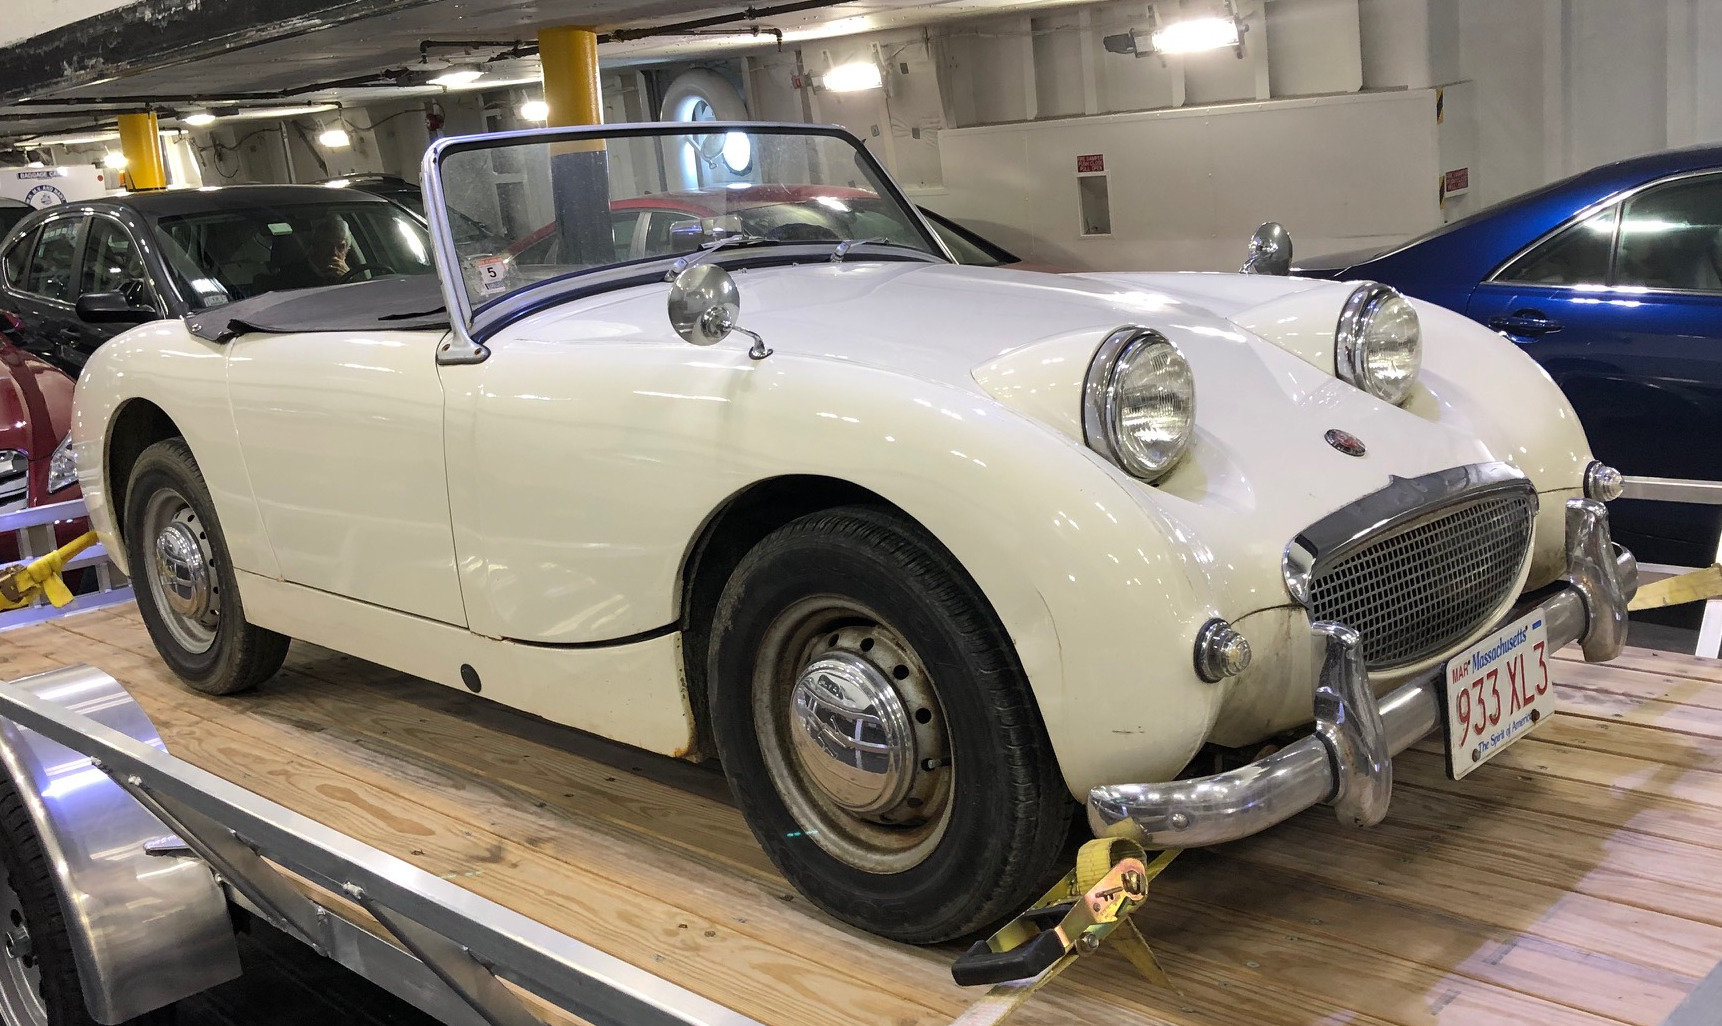 Transportation Company - Austin-Healey - Automobiles